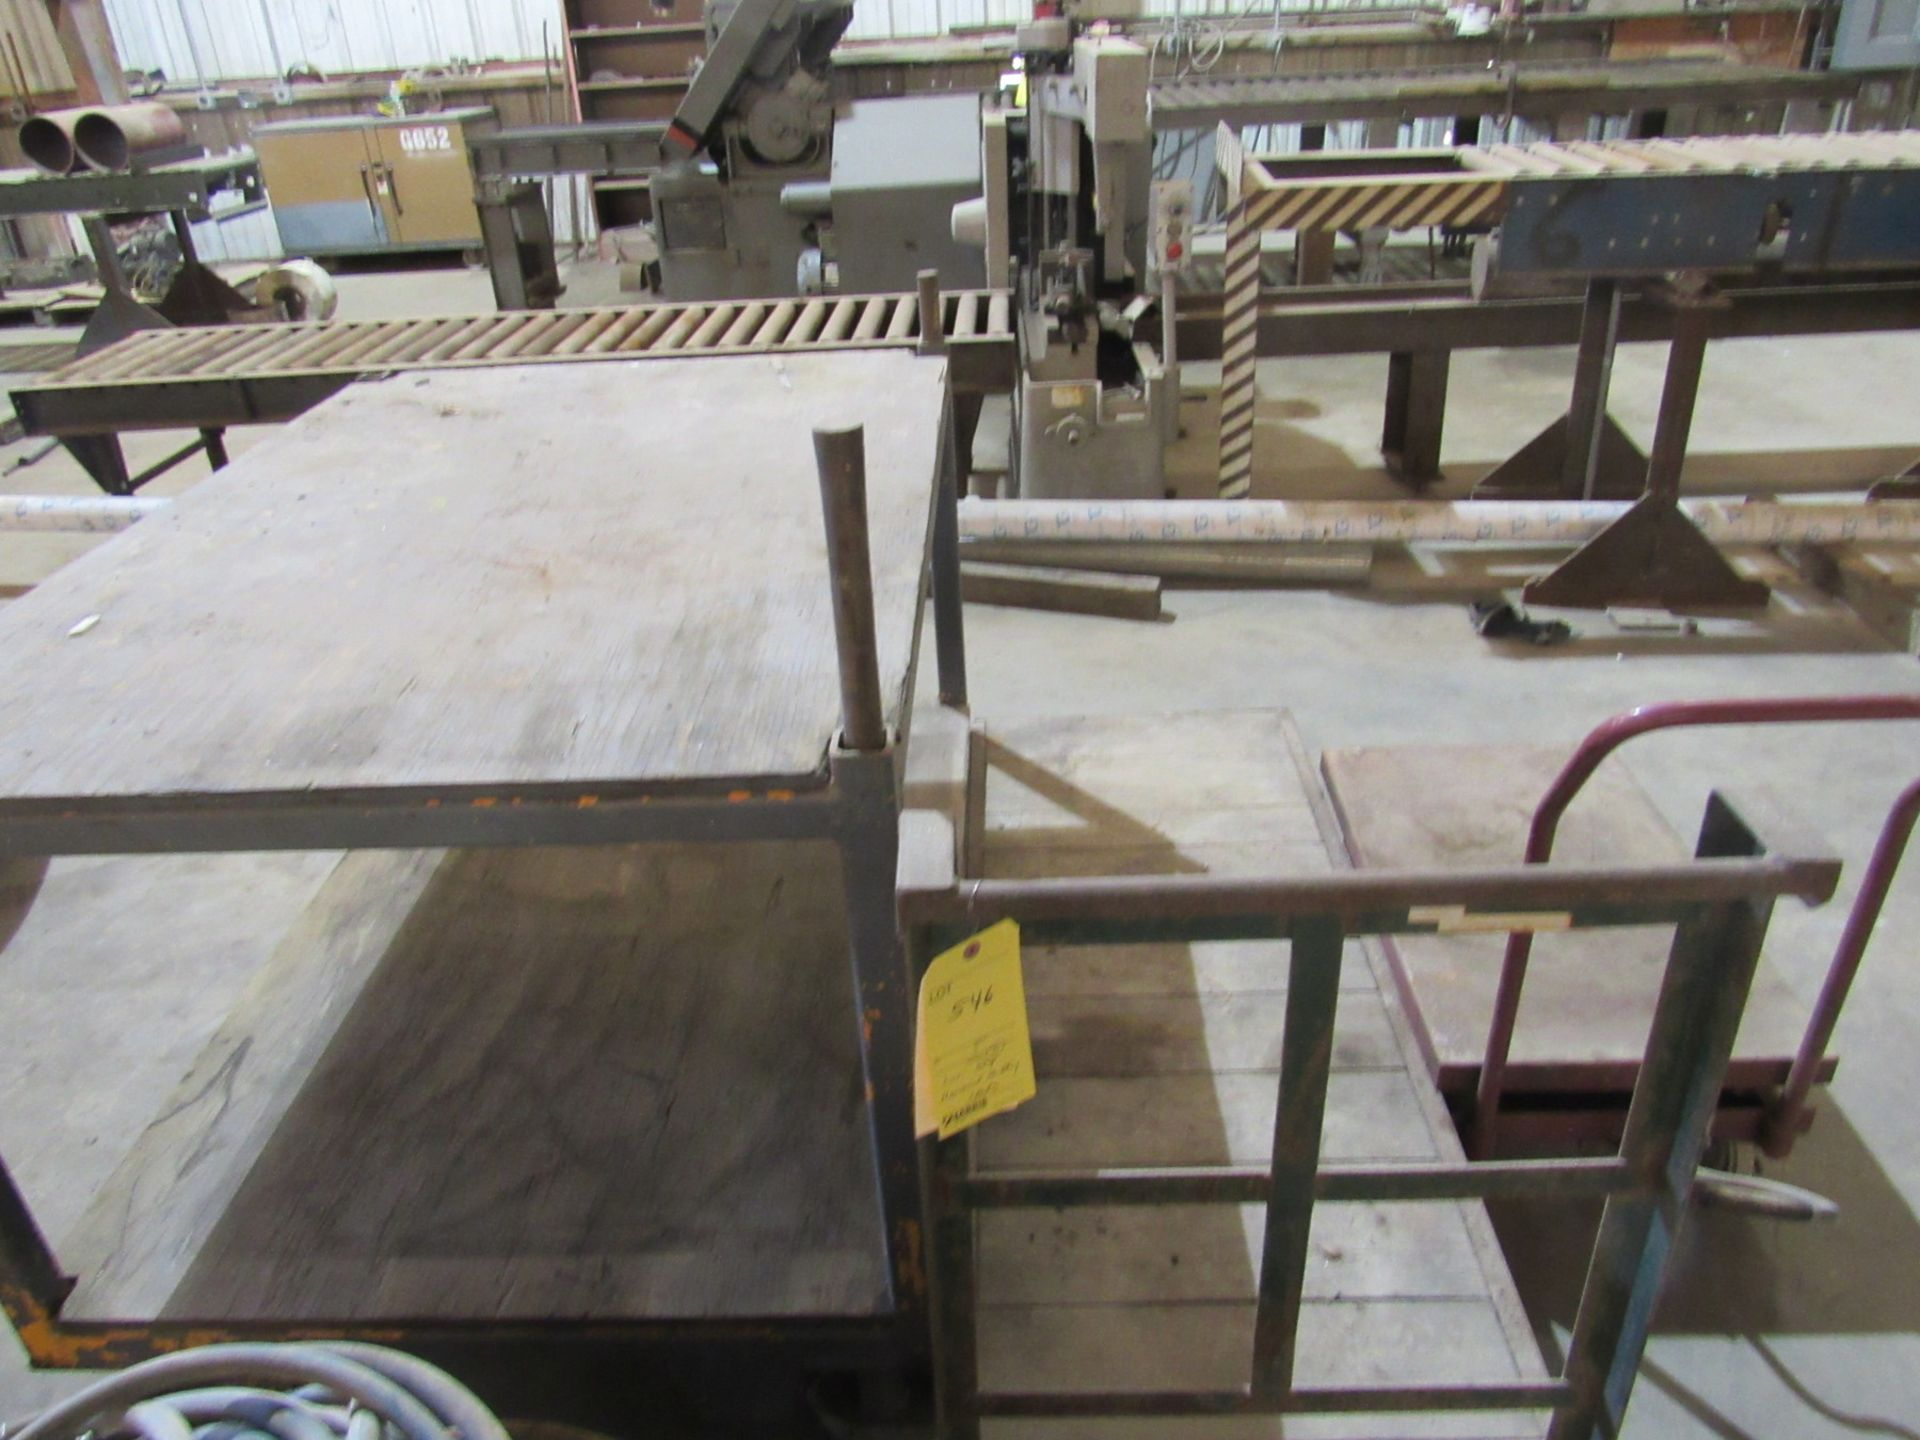 Lot: Shop Material Moving Carts - Image 2 of 2